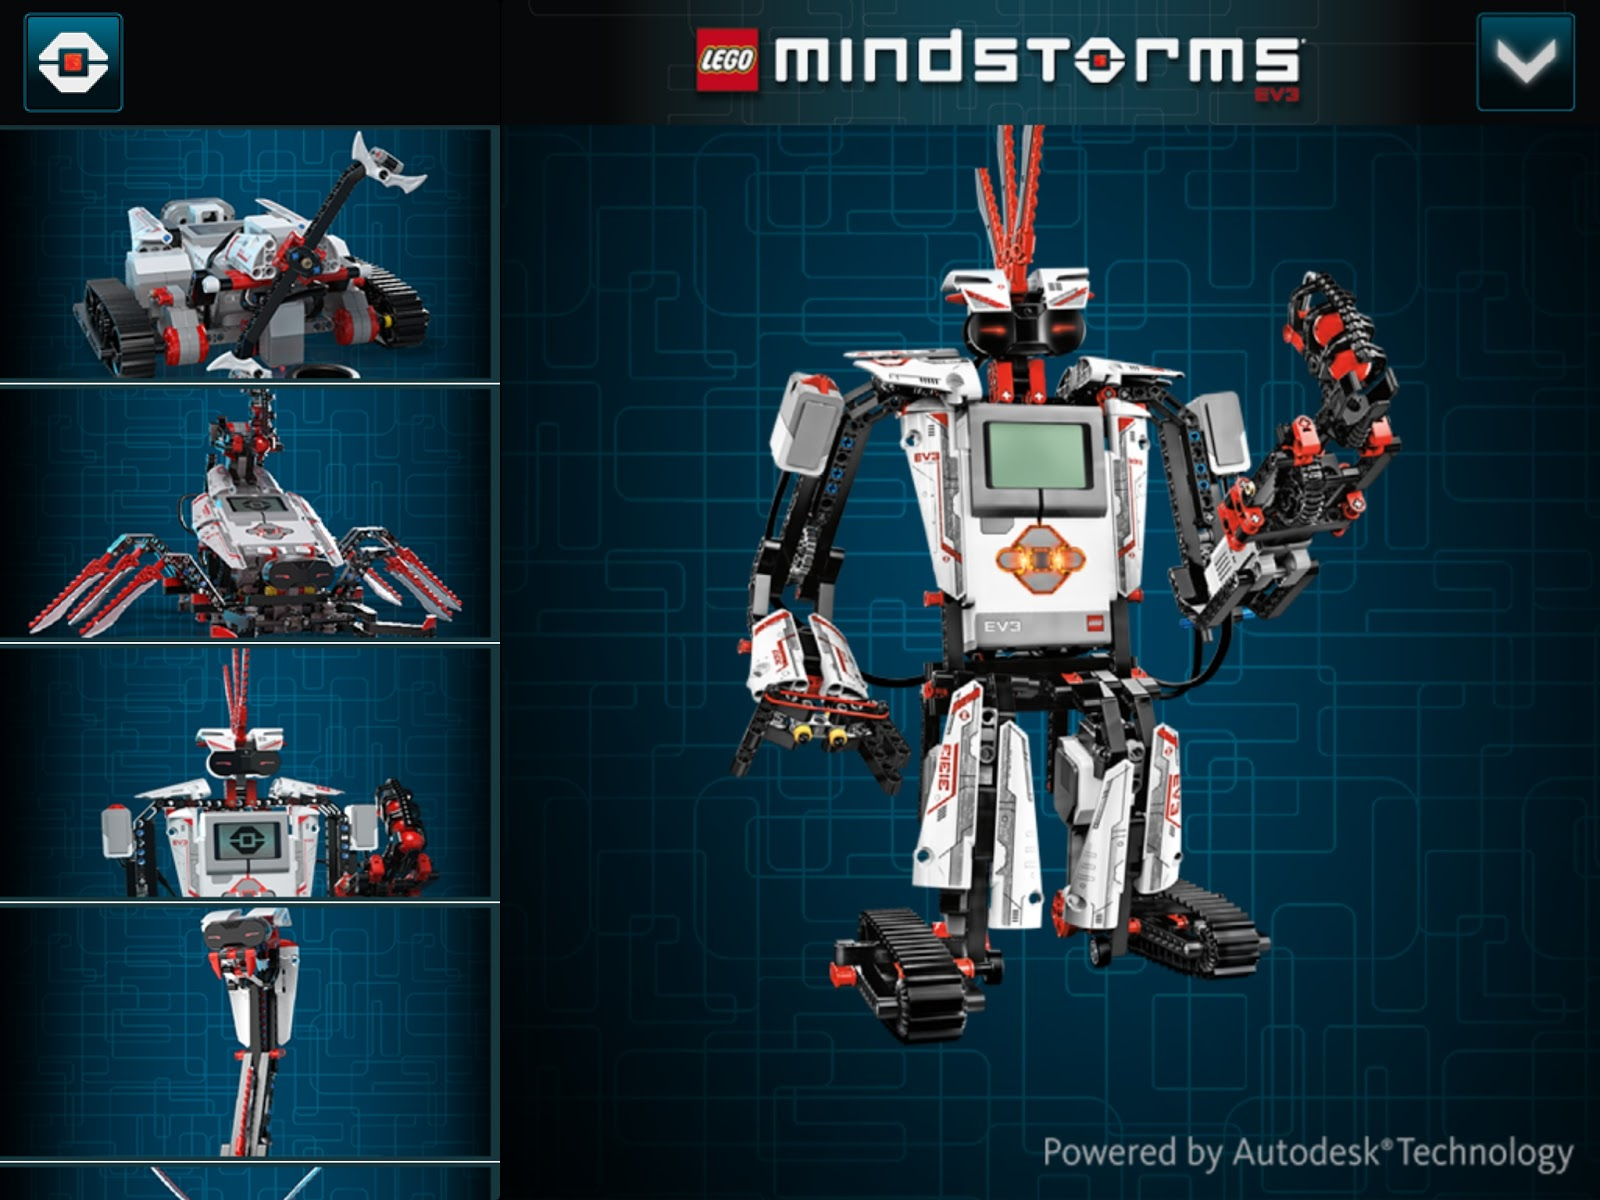 Inventor Topix Autodesk And Lego Partner Up To Provide 3d Building Instructions For Mindstorms Ev3